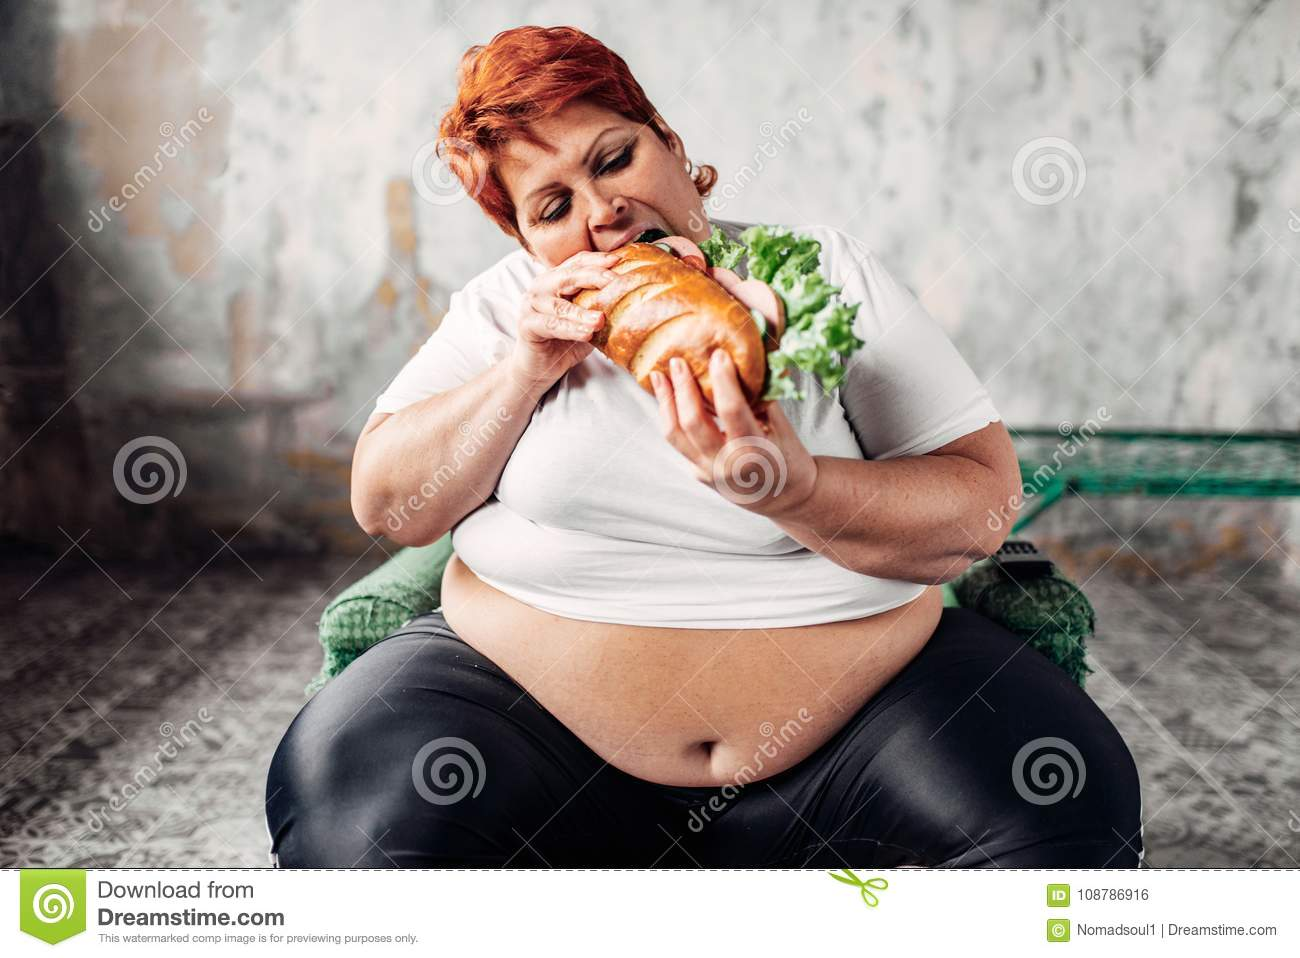 Fat Woman Sits In Chair And Eats Sandwich, Bulimic Stock